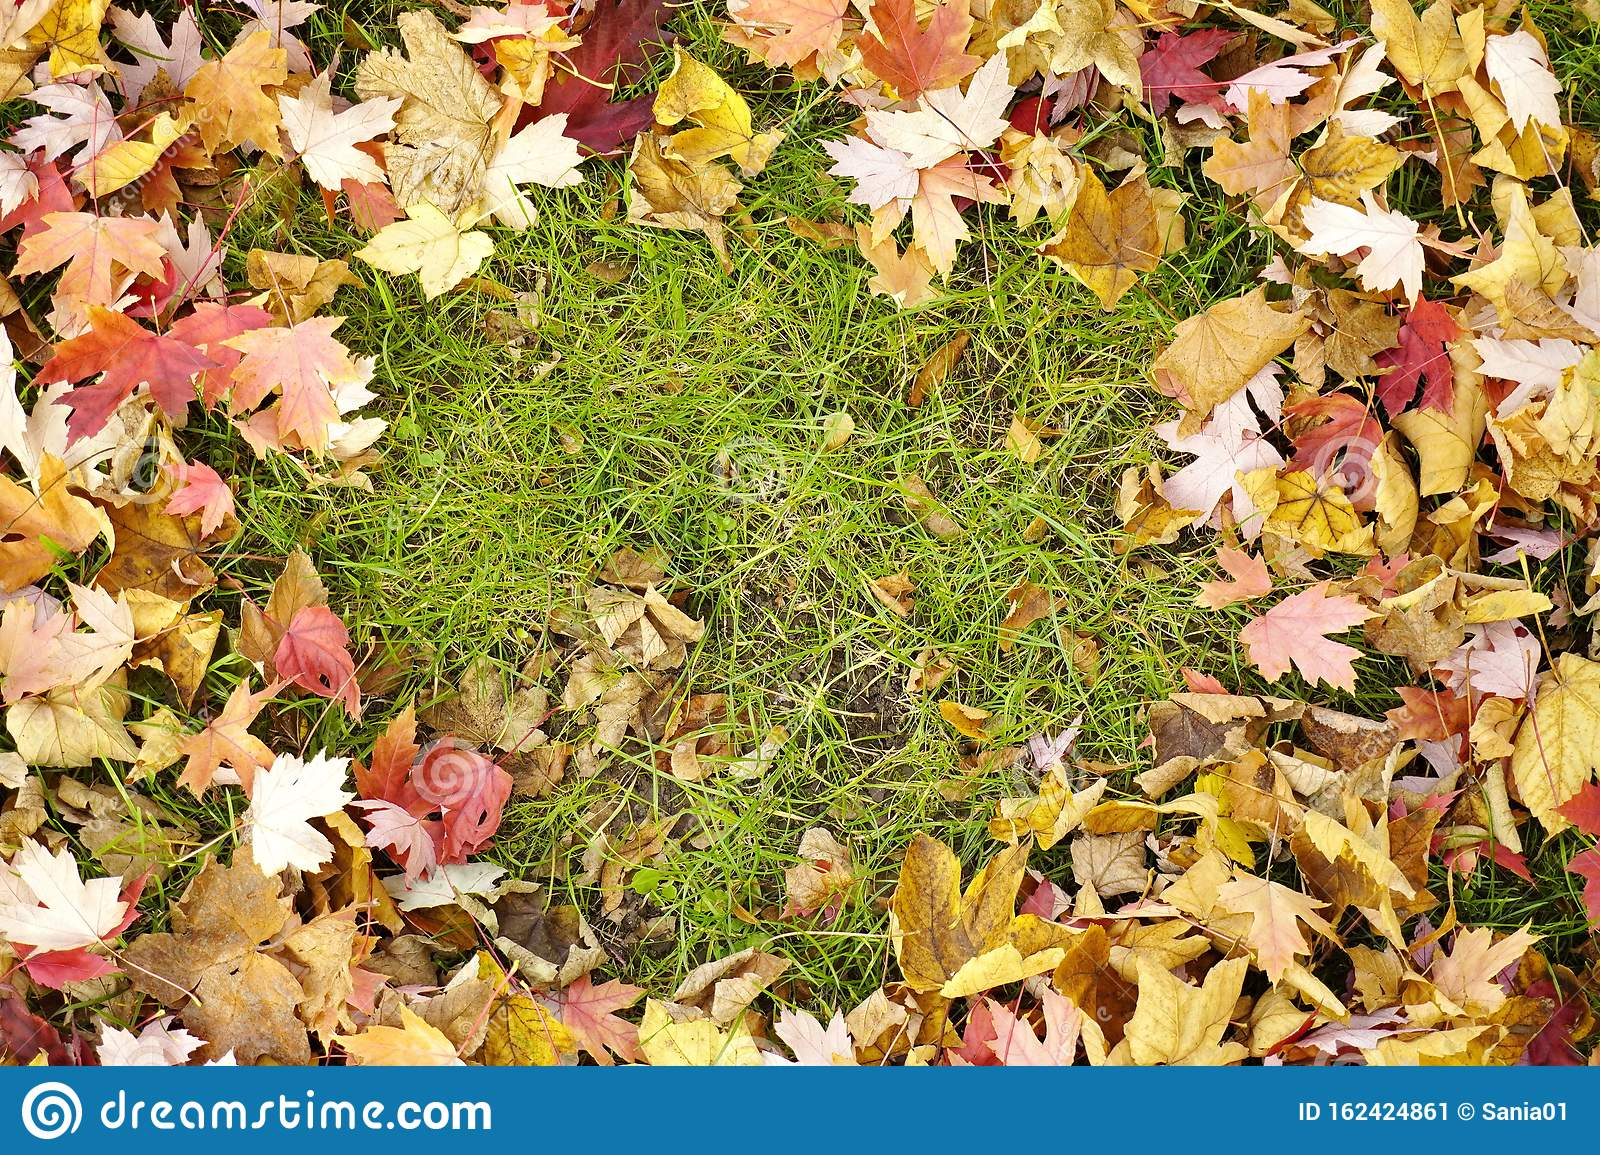 A Carpet Of Fallen Dry Rustling Yellow Red Leaves Autumn Background Screensaver Copy Space Stock Image Image Of Bright Garden 162424861